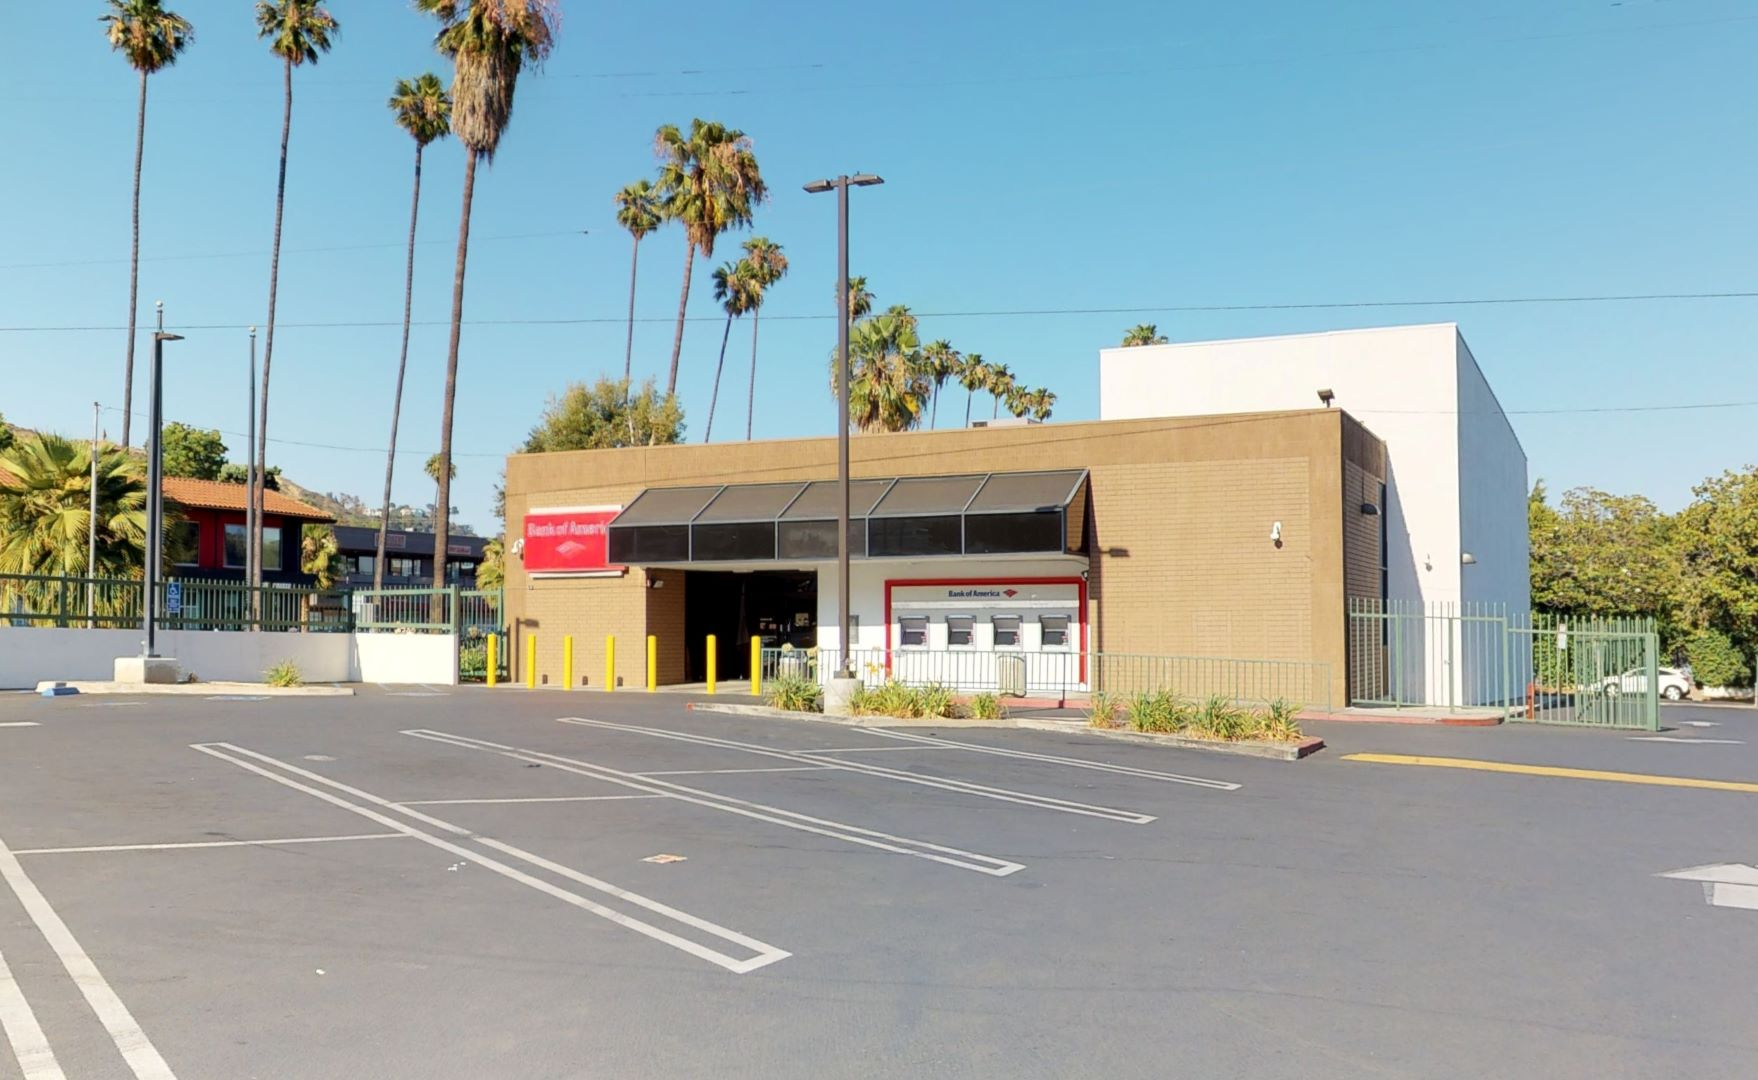 Bank of America financial center with walk-up ATM | 7800 W Sunset Blvd, Hollywood, CA 90046